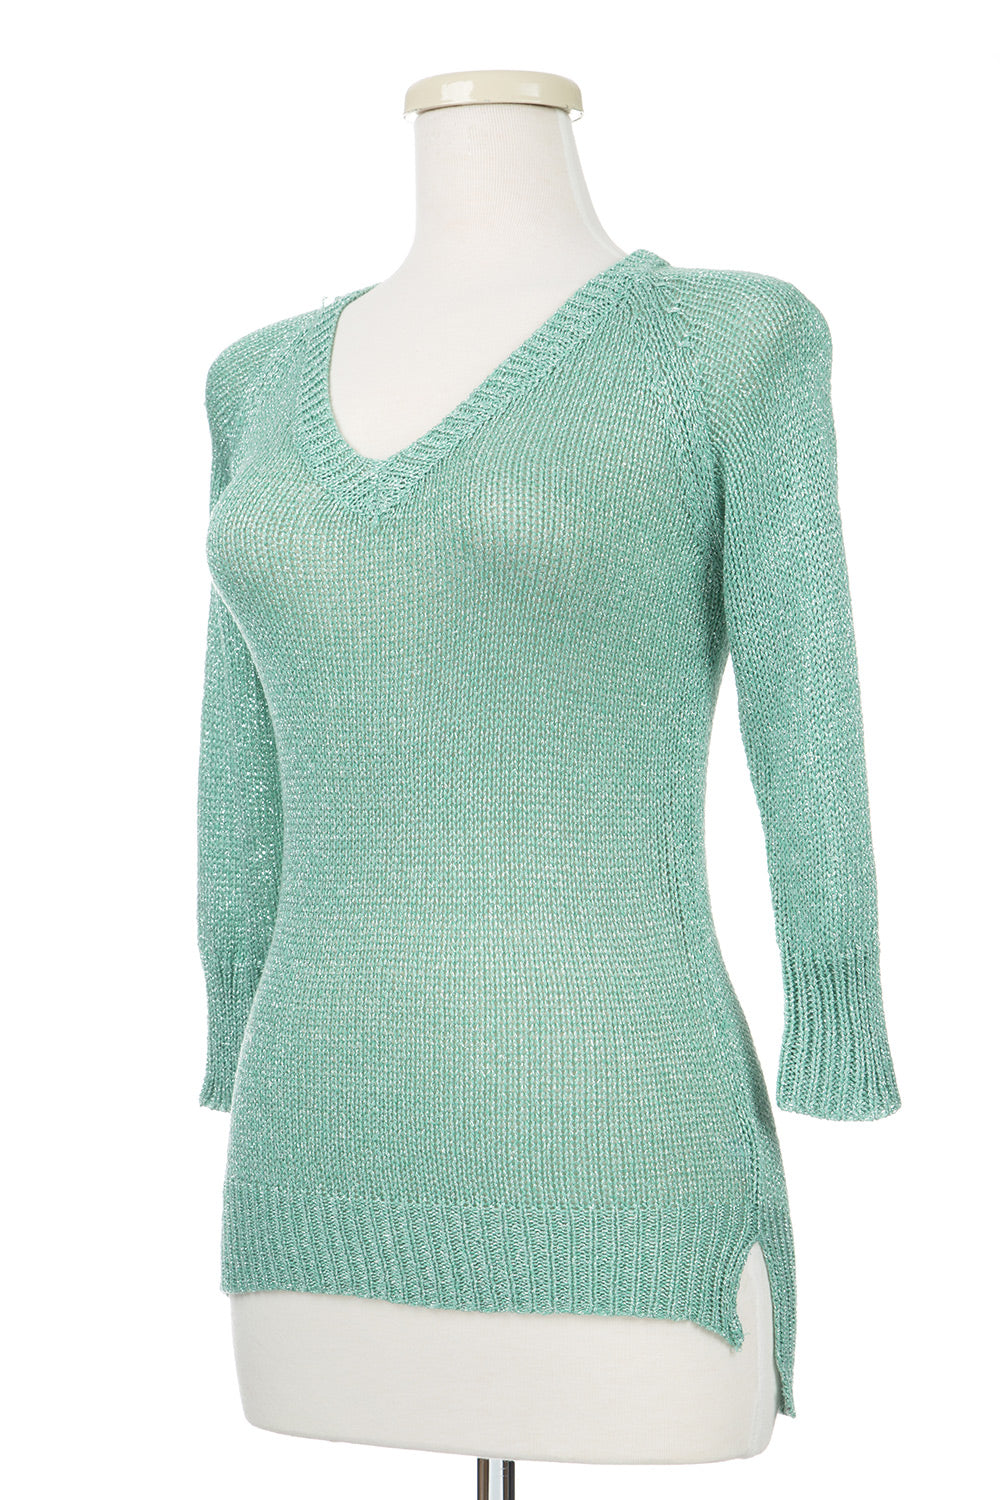 Type 2 Mint Sparkle Sweater